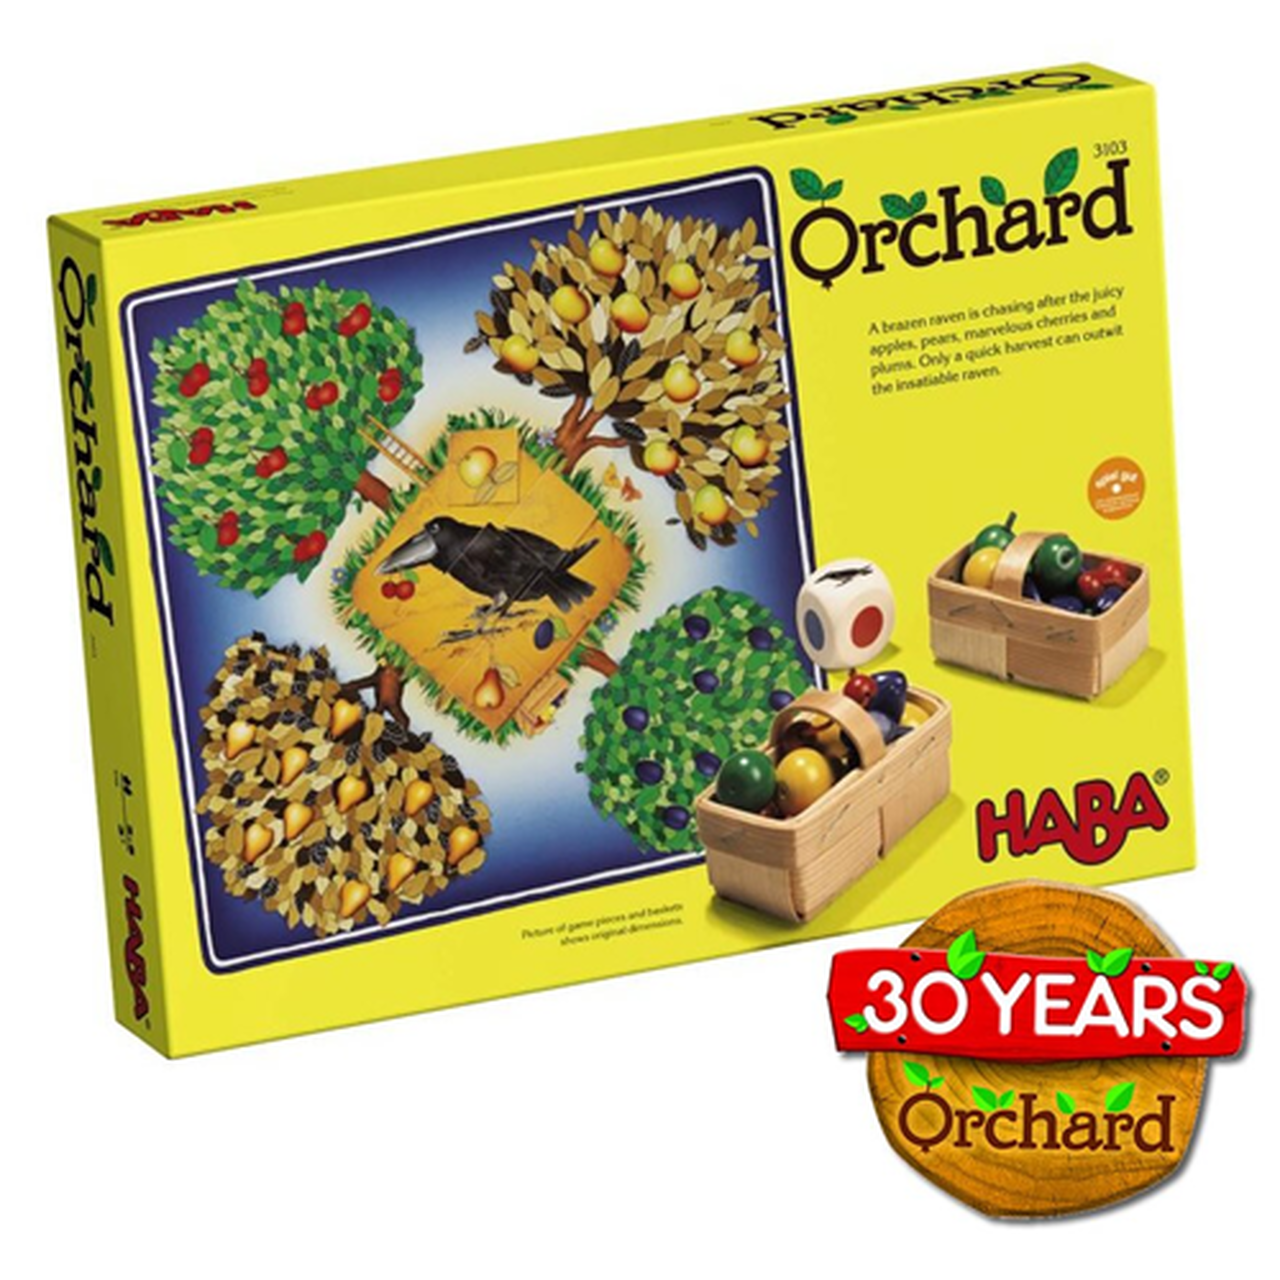 The Orchard Game